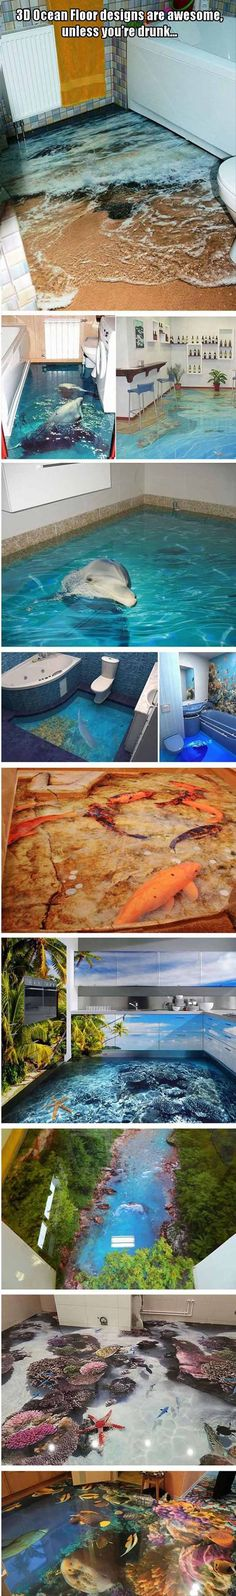 3D Ocean Floor Designs Are Awesome Unless Youre Drunk 10 Pics: